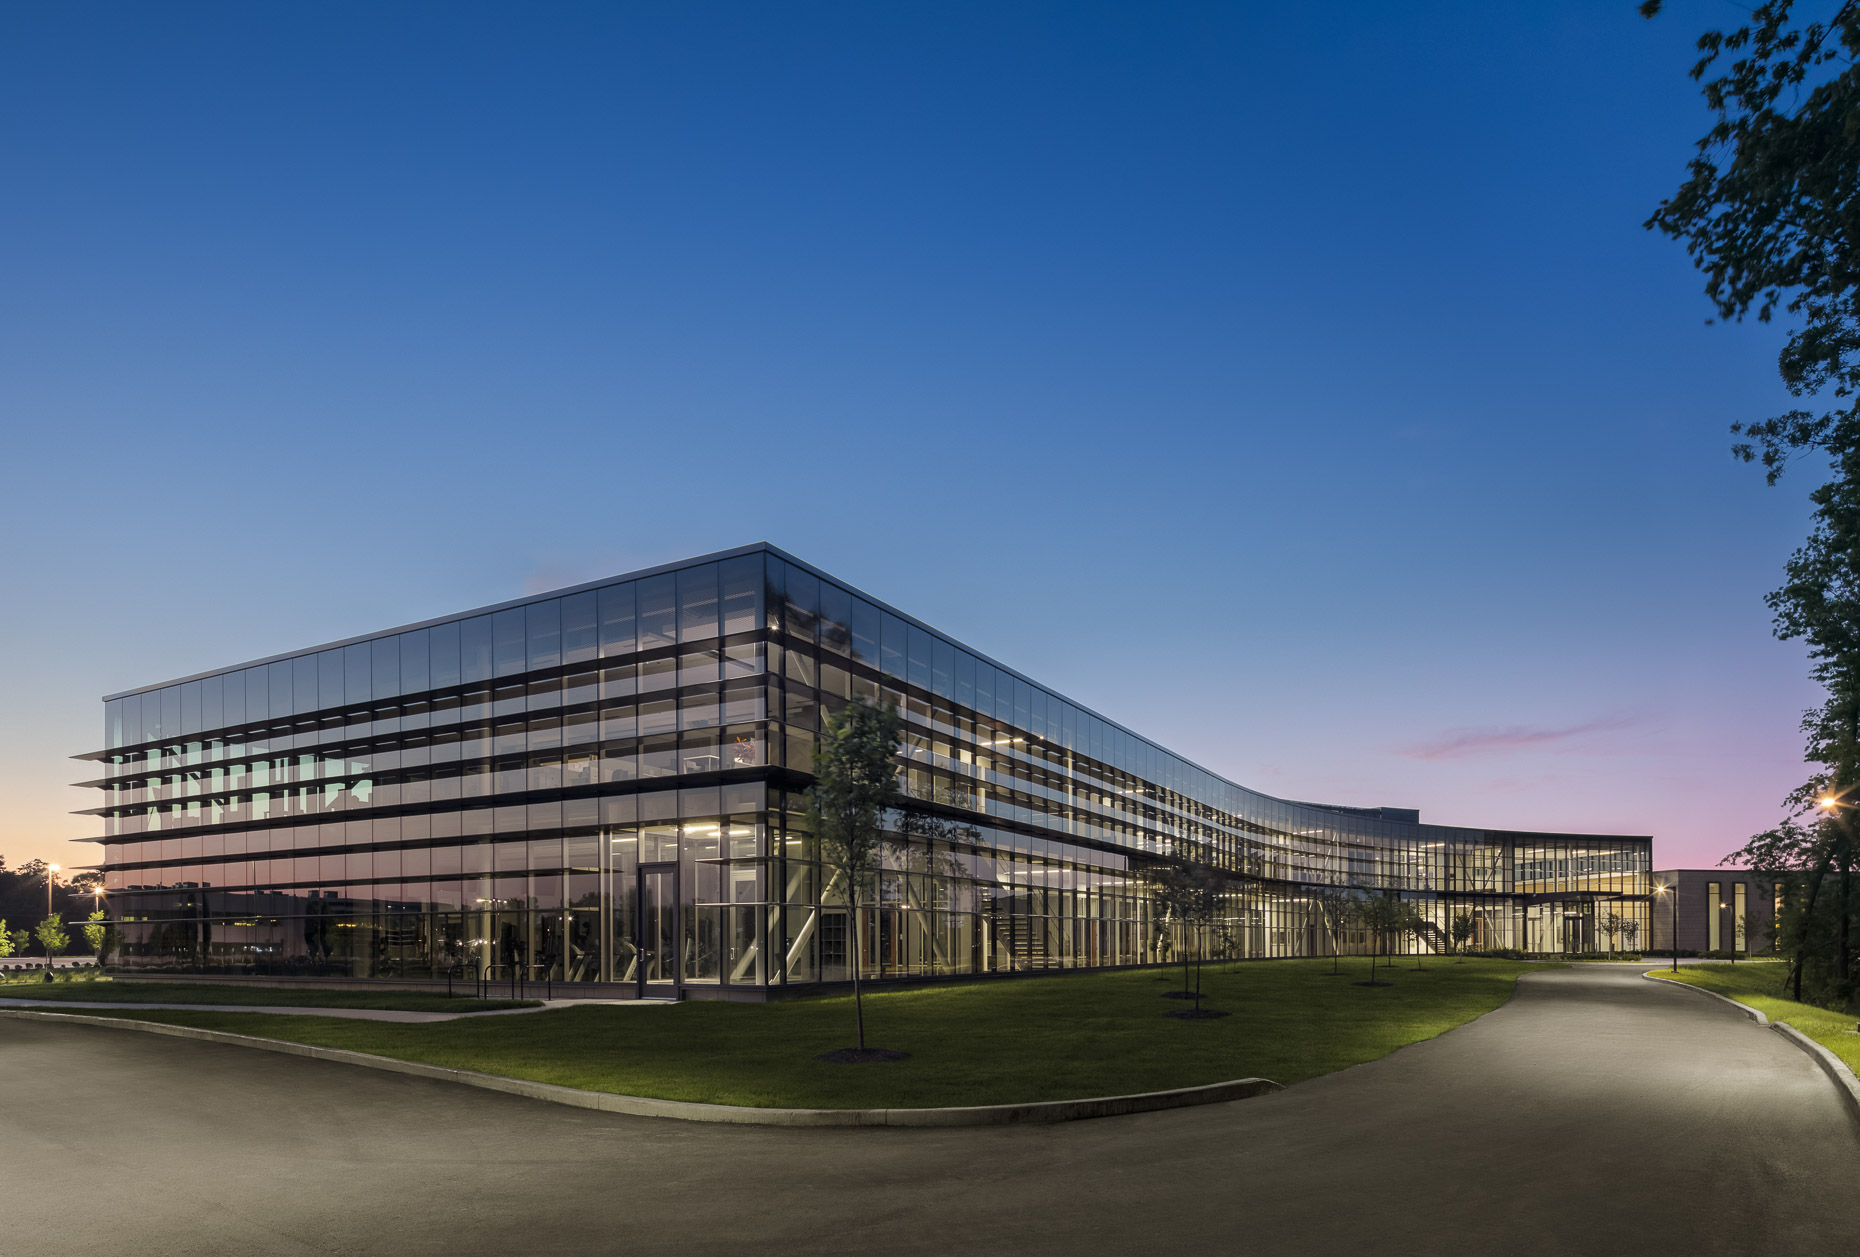 Wabash Valley Power Headquarters by Ratio Architects photographed by Brad Feinknopf based in Columbus, Ohio